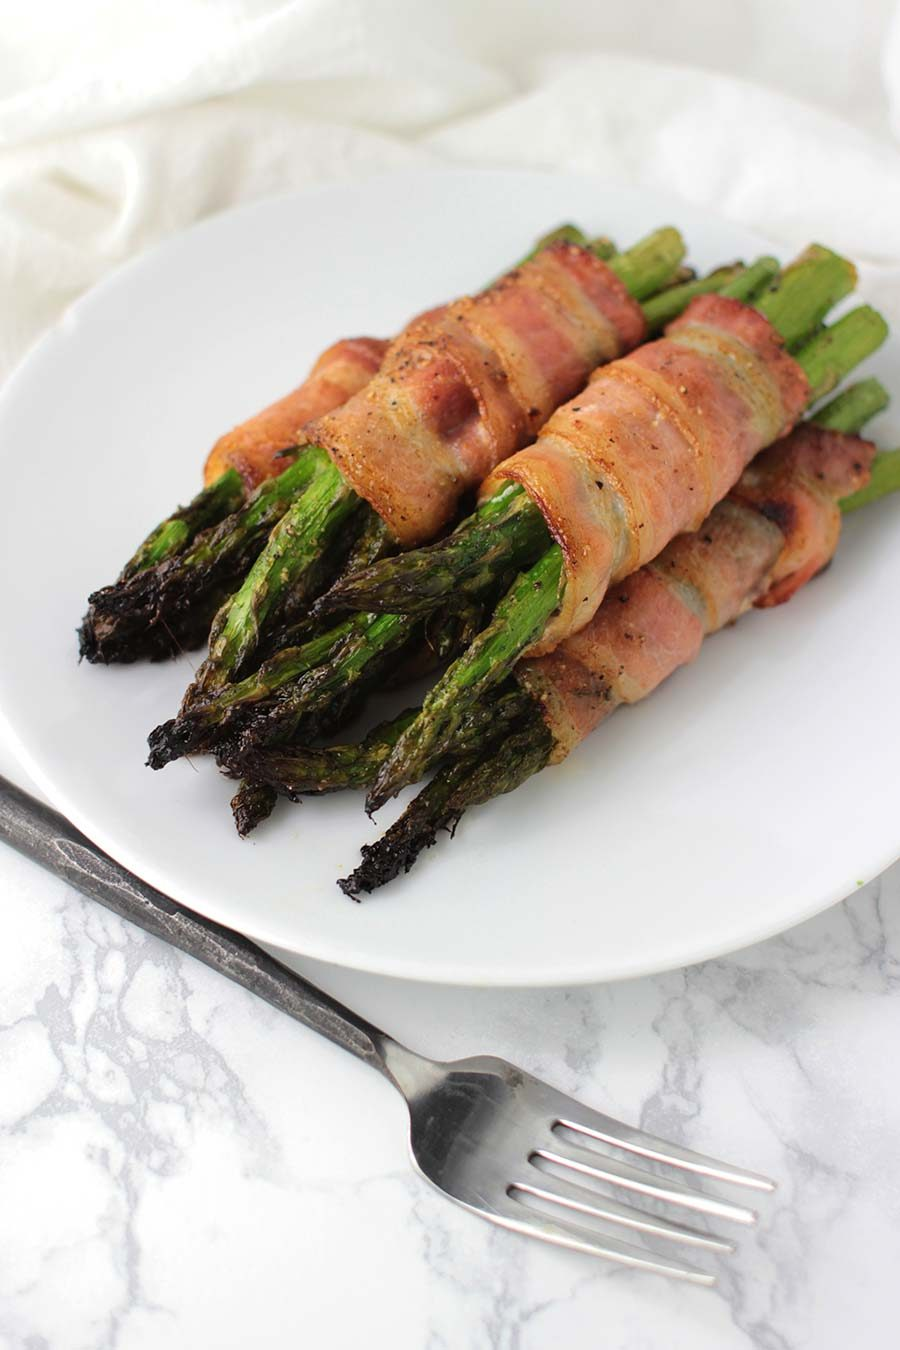 Bacon-Wrapped Asian Asparagus recipe from acleanplate.com #aip #autoimmuneprotocol #paleo